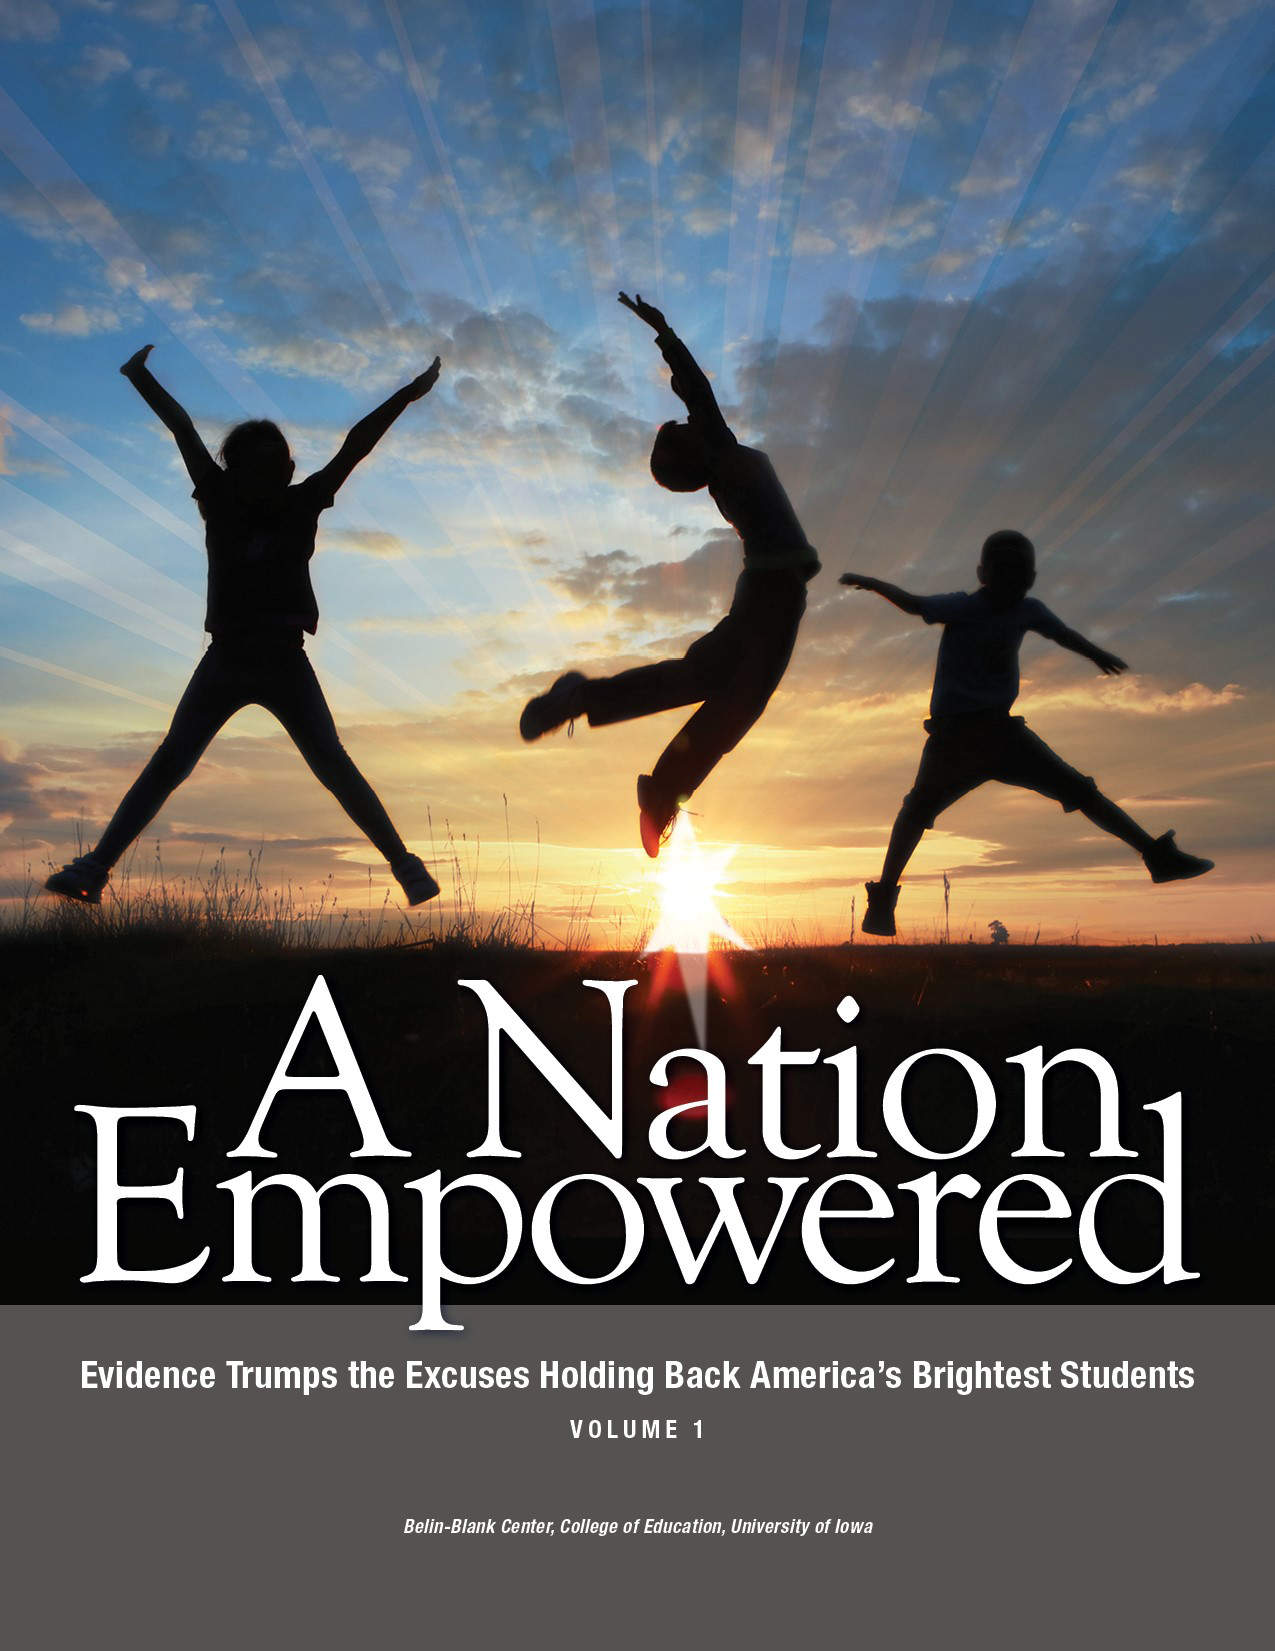 A Nation Empowered: Evidence Trumps the Excuses Holding Back America's Brightest Students